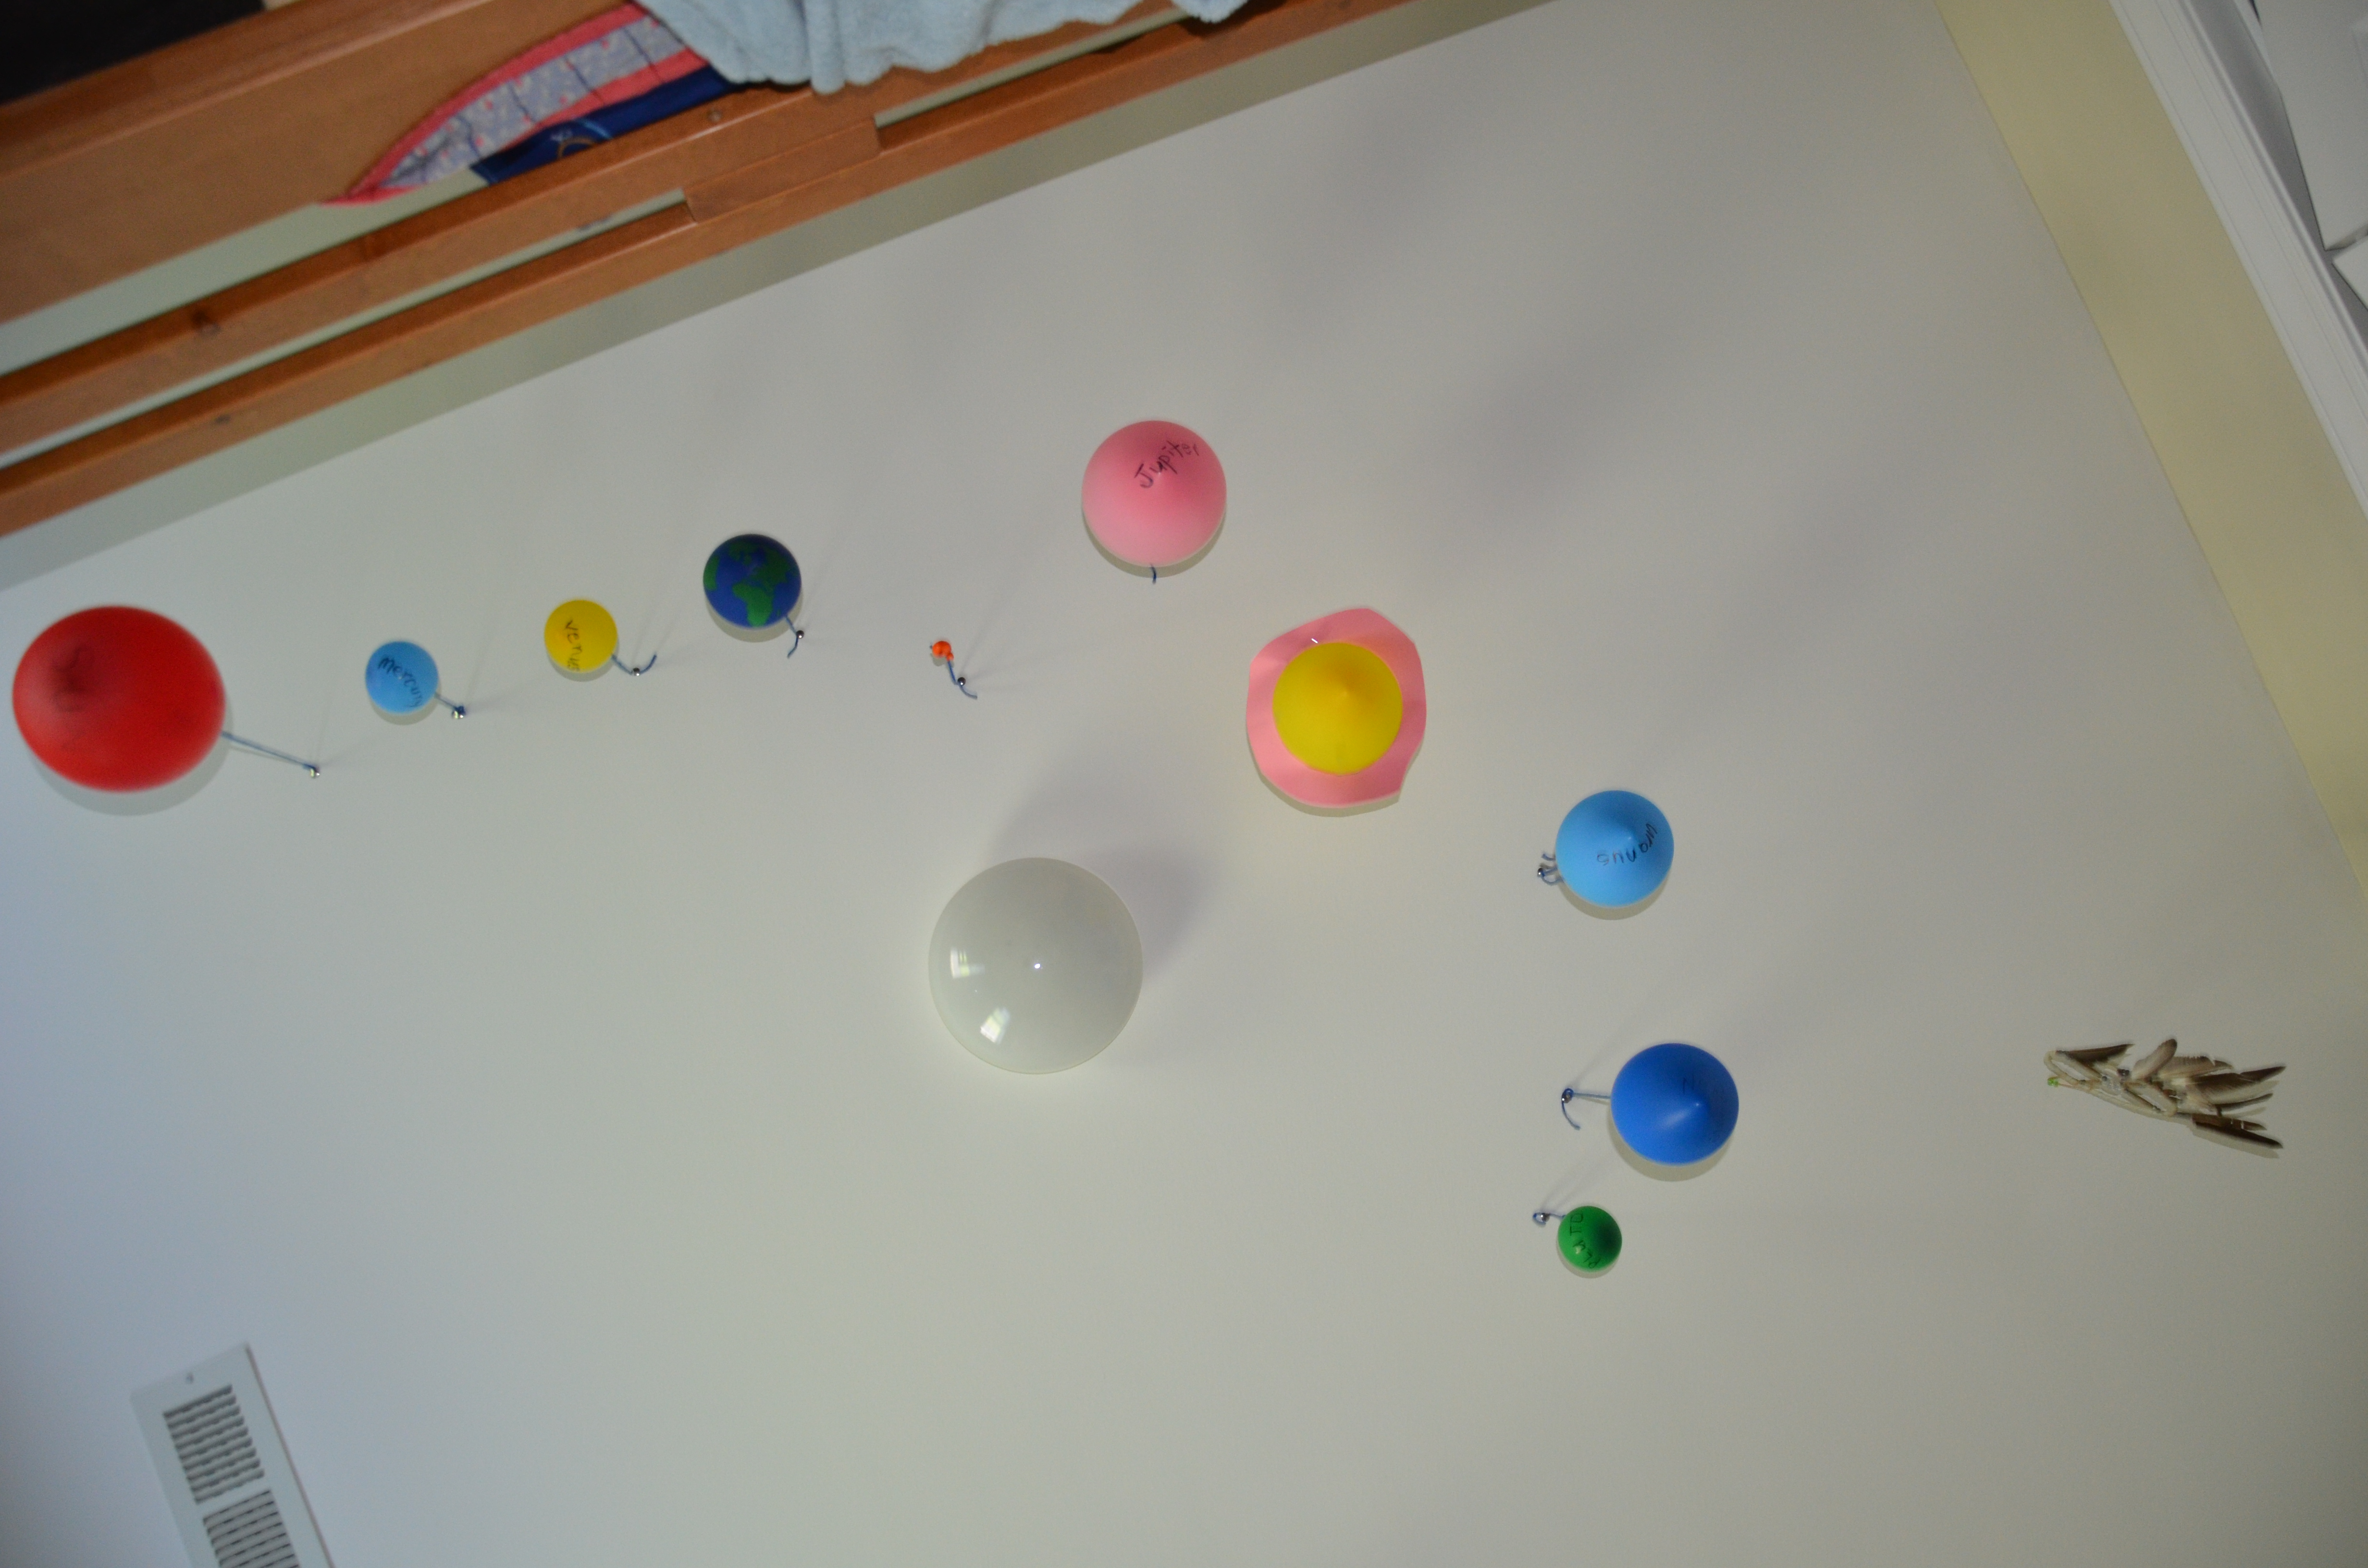 hang up solar system ceiling - photo #10